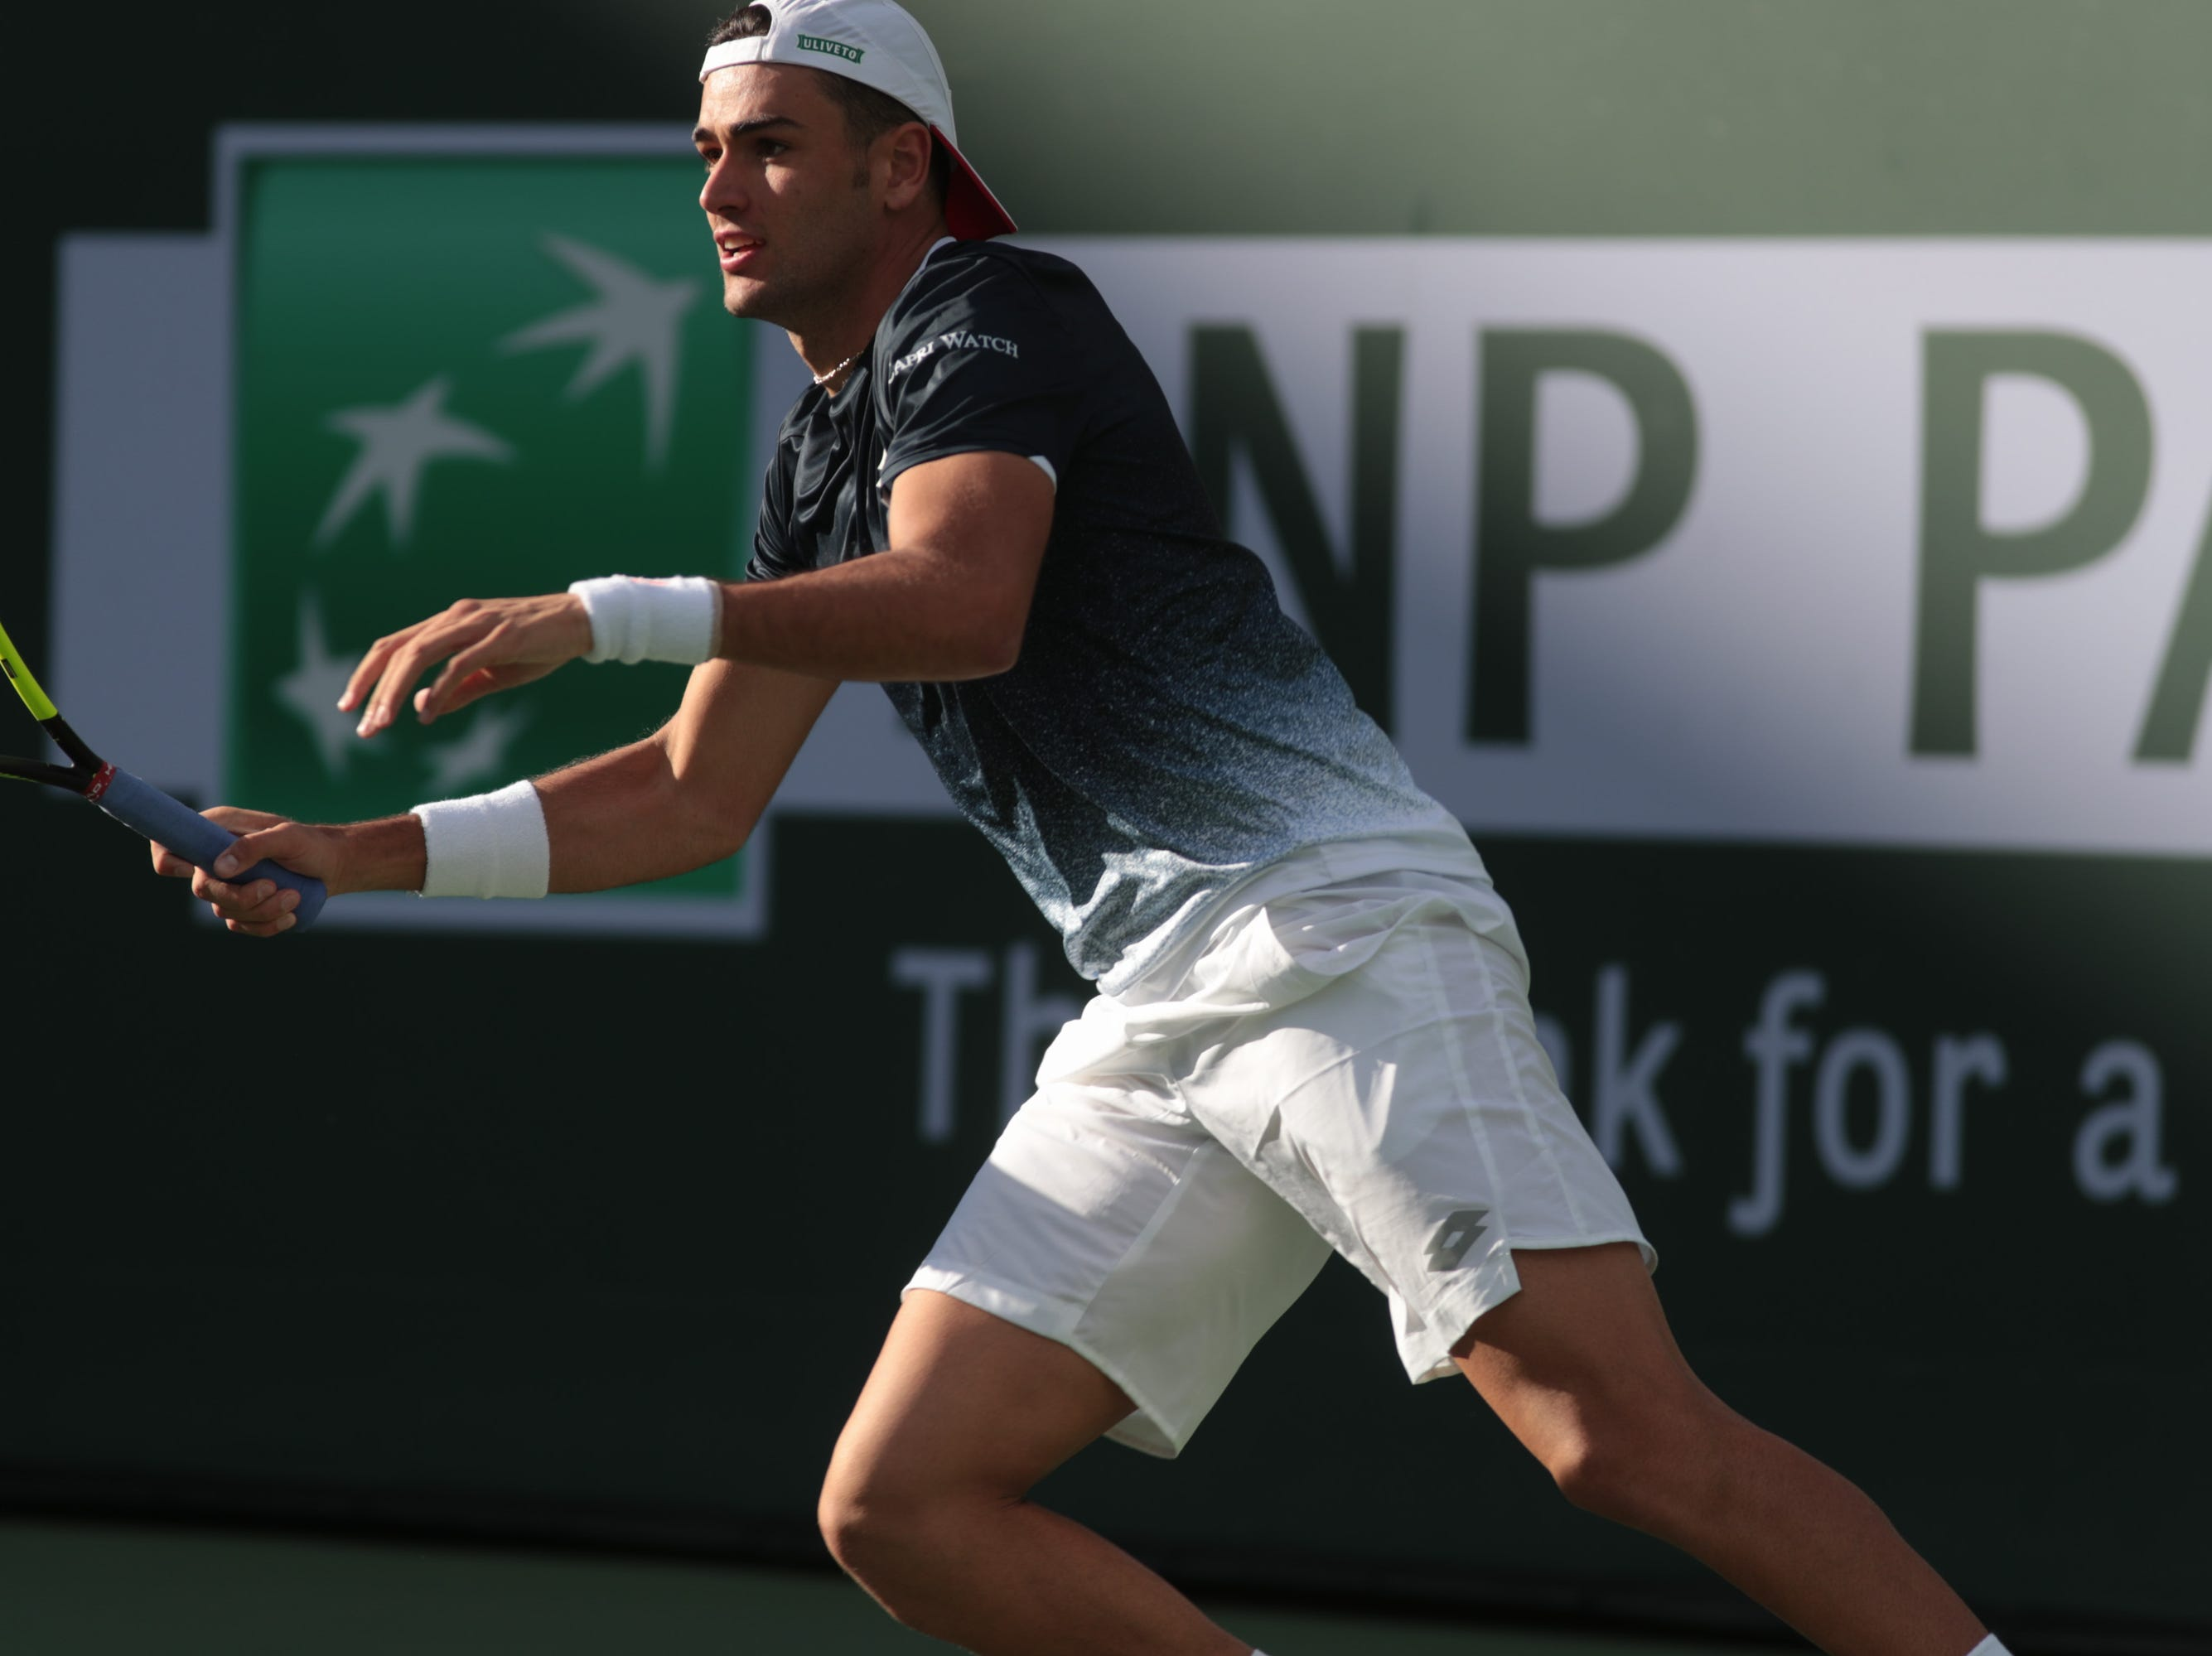 Matteo Berrettini returns a point to Sam Querrey at the BNP Paribas Open, Indian Wells, Calif., Thursday, March 7, 2019.